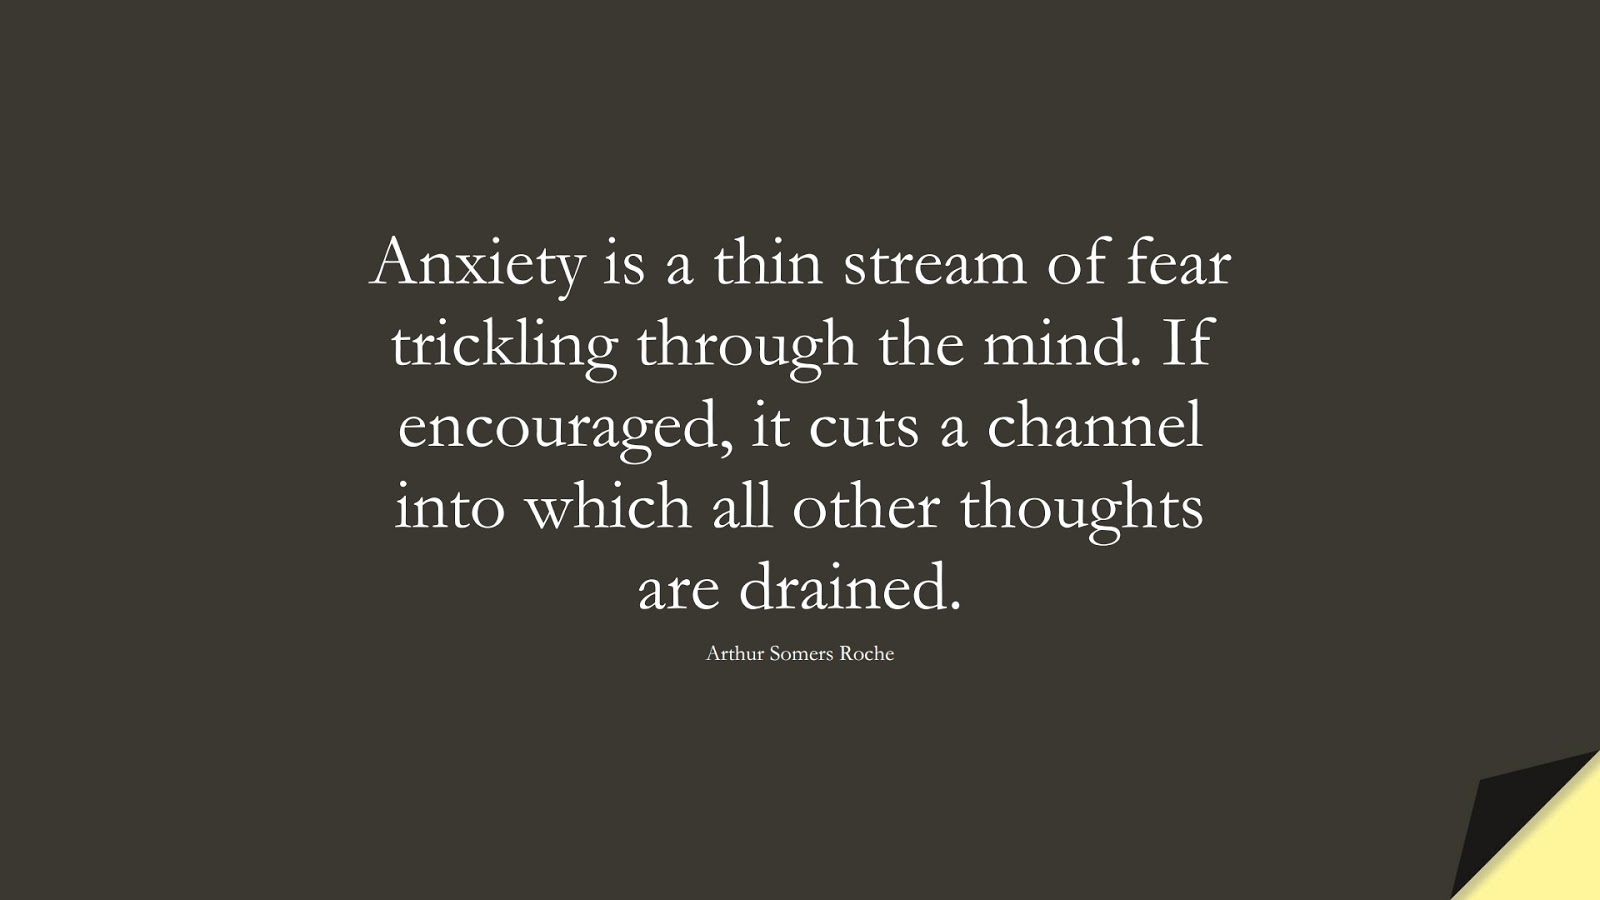 Anxiety is a thin stream of fear trickling through the mind. If encouraged, it cuts a channel into which all other thoughts are drained. (Arthur Somers Roche);  #AnxietyQuotes